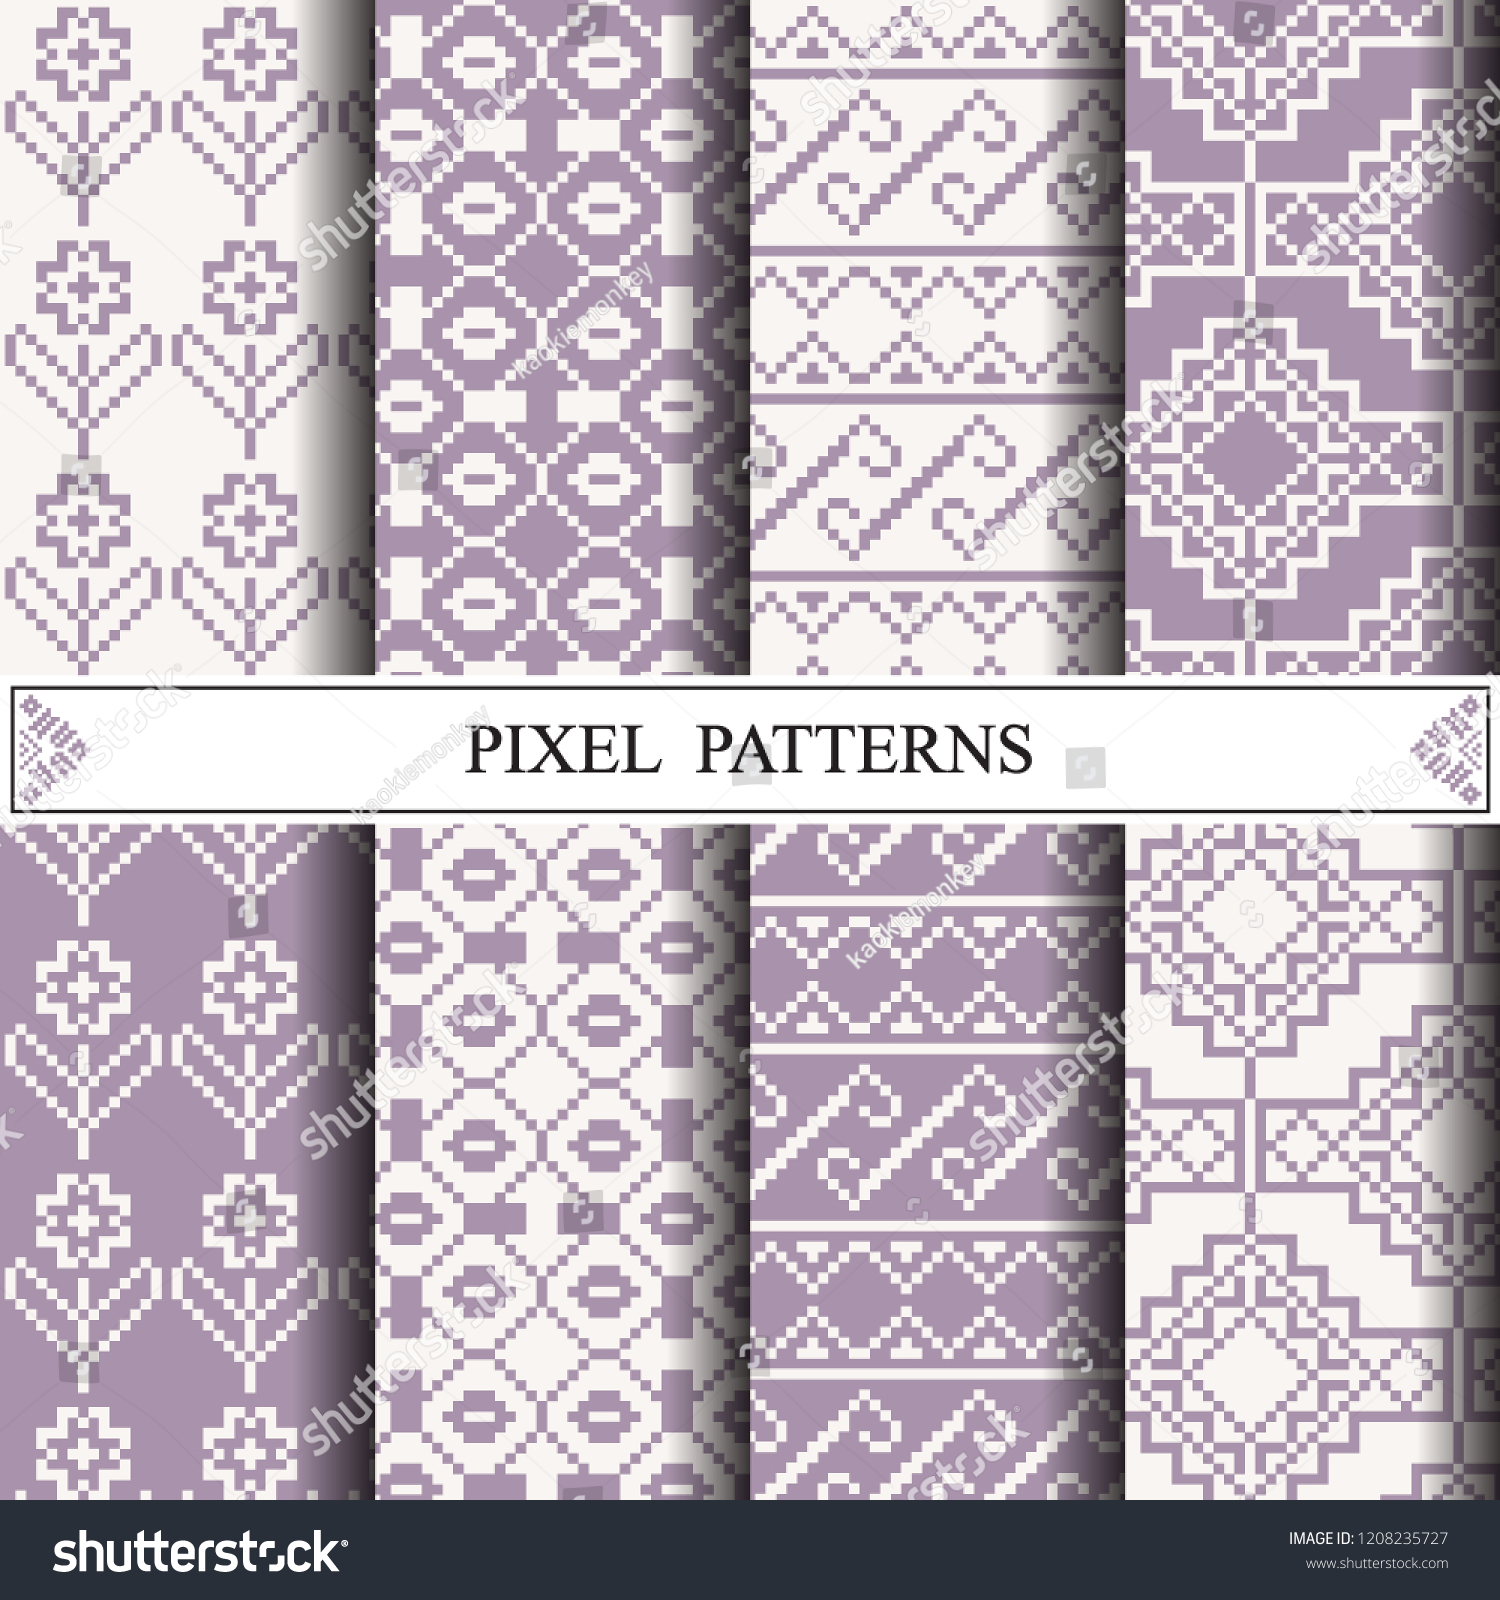 Thai Pixel Pattern Making Fabric Textile Stock Vector (Royalty Free ... 4e6be9a2a7b20